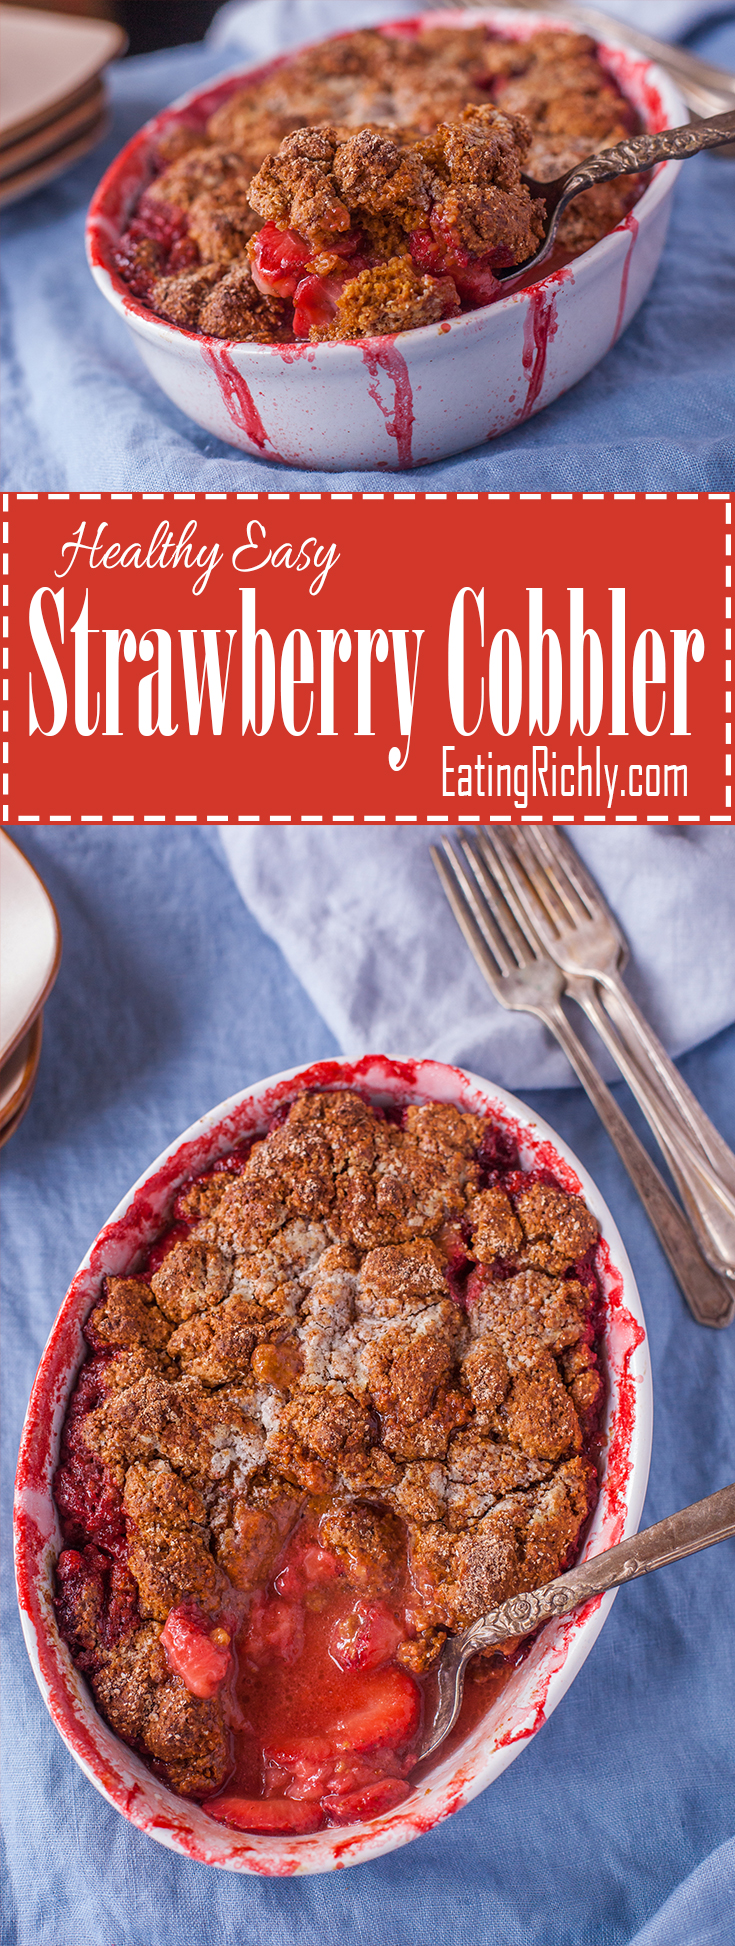 This healthy, easy strawberry cobbler recipe is made with whole foods and perfect for getting your kids in the kitchen. Plus it's easily #dairyfree From EatingRichly.com